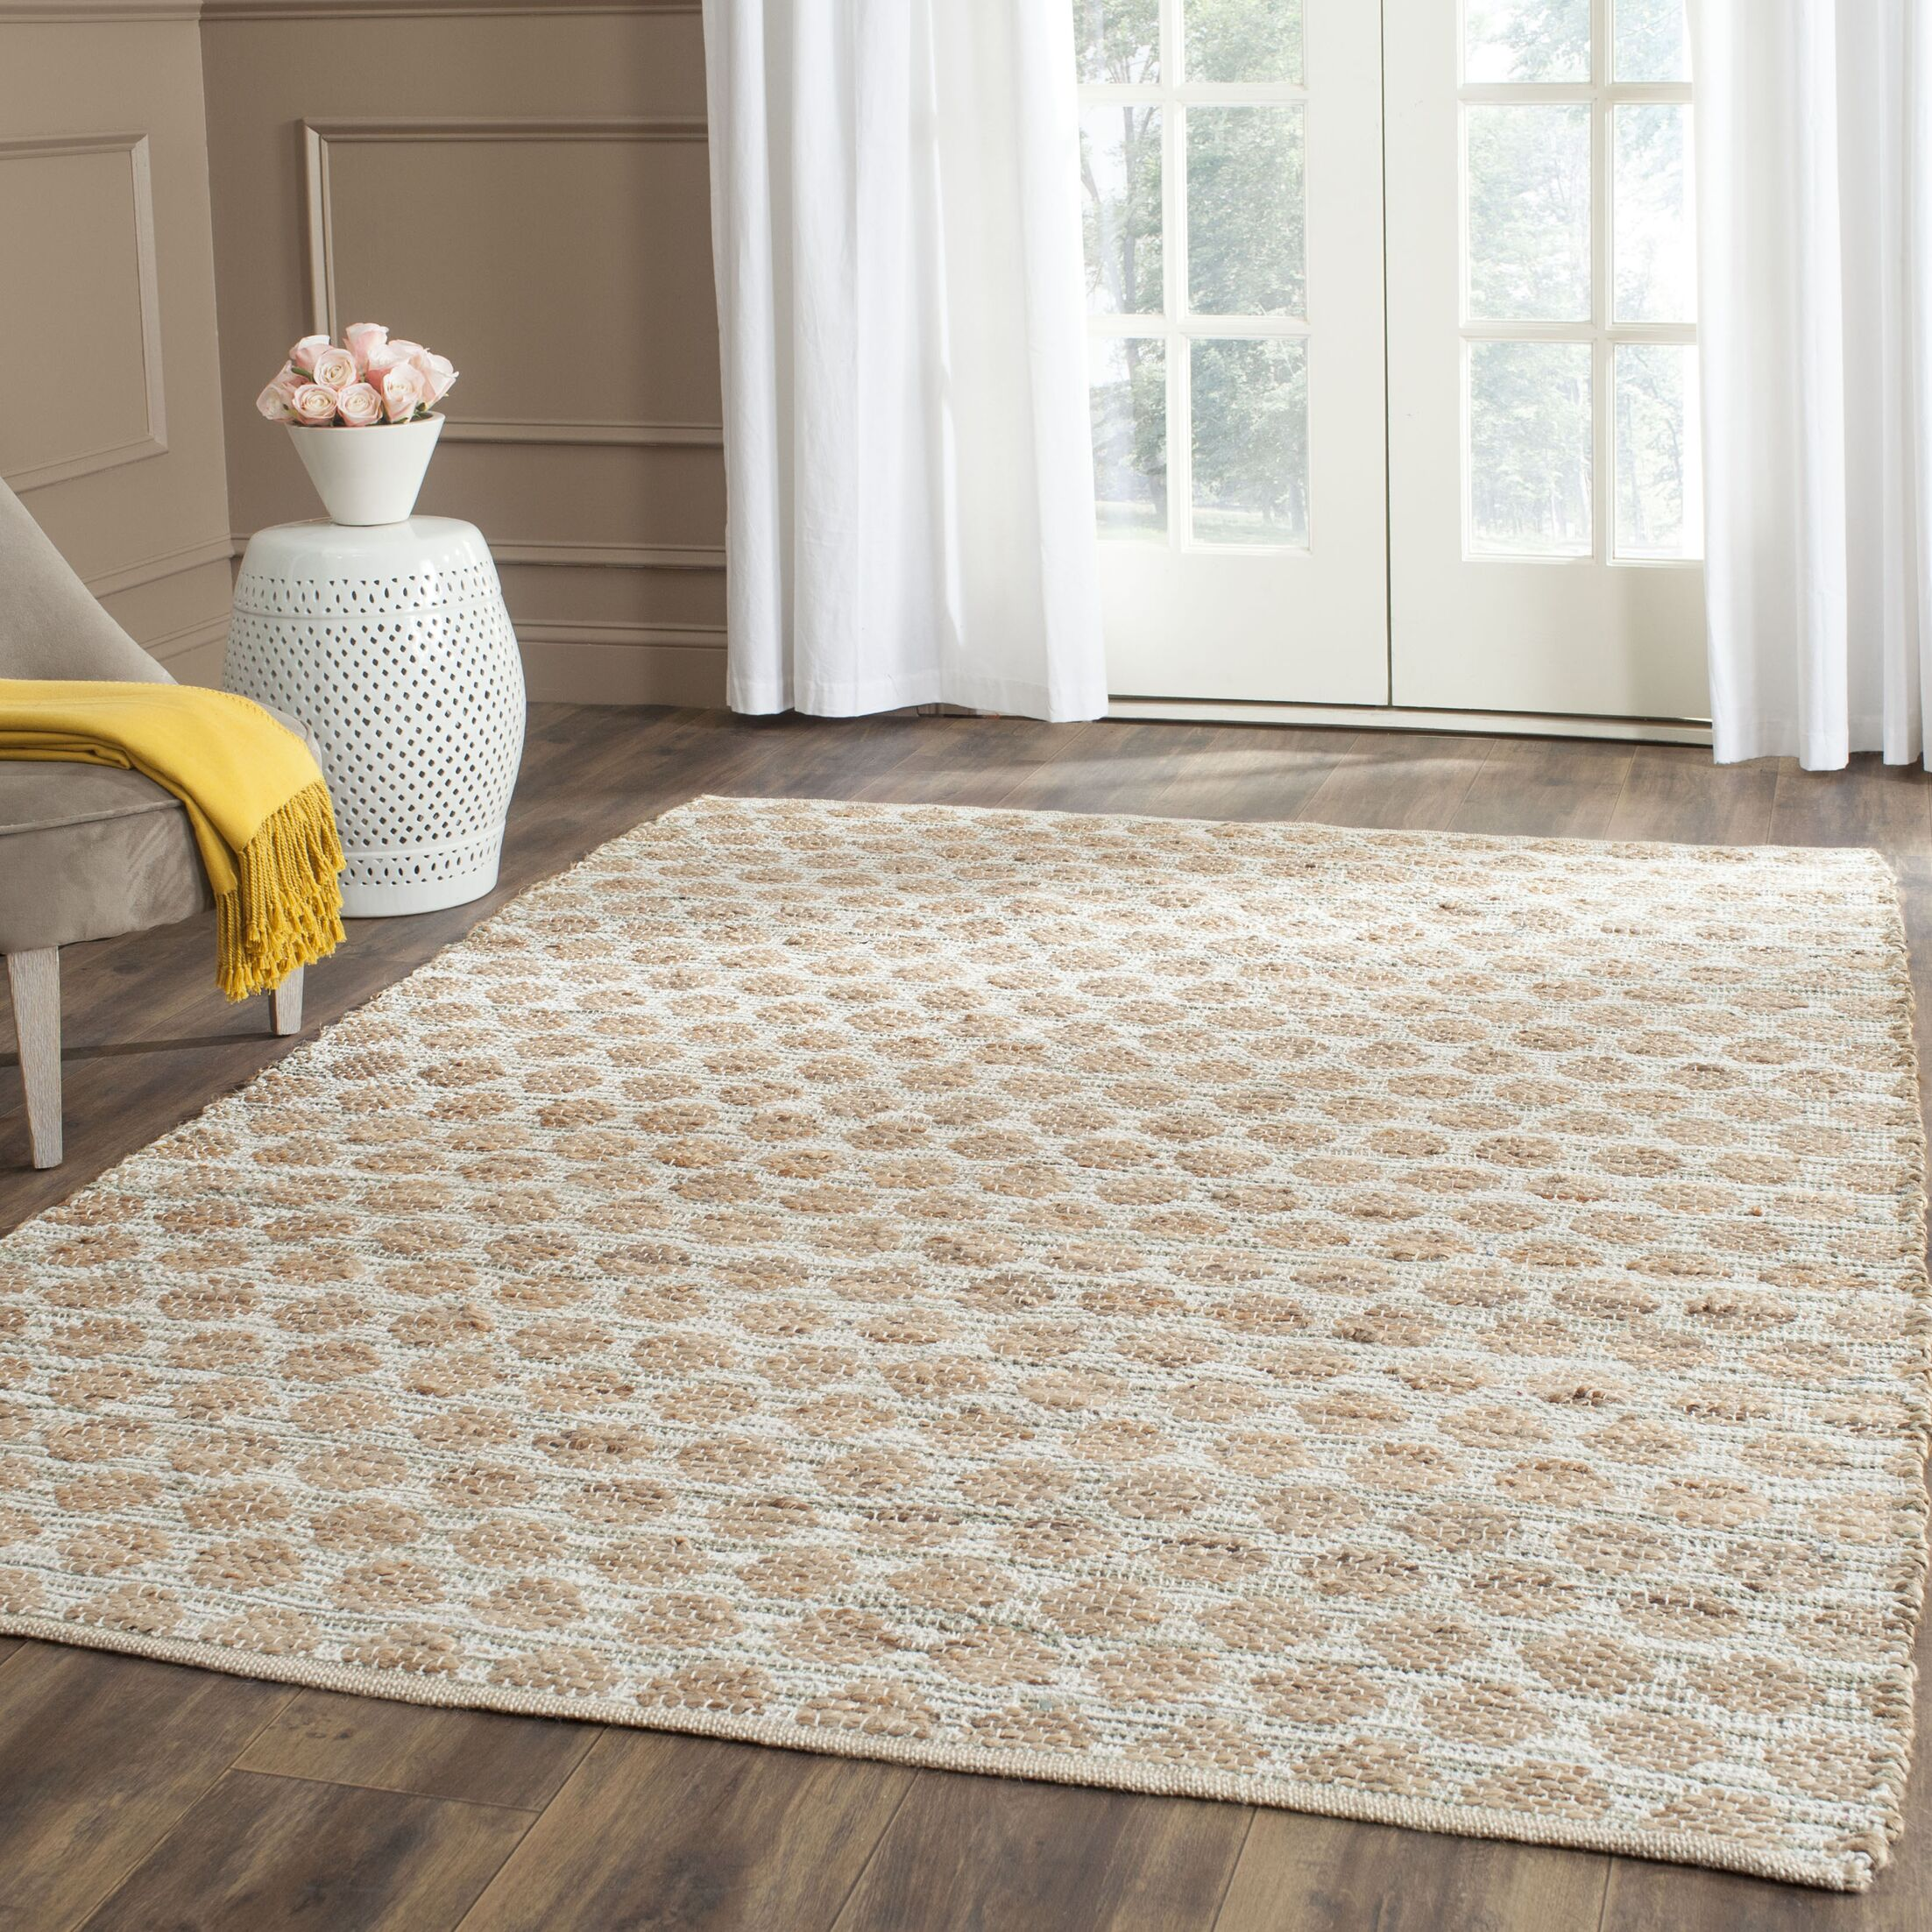 Zap Hand-Woven Brown Area Rug Rug Size: Rectangle 4' x 6'